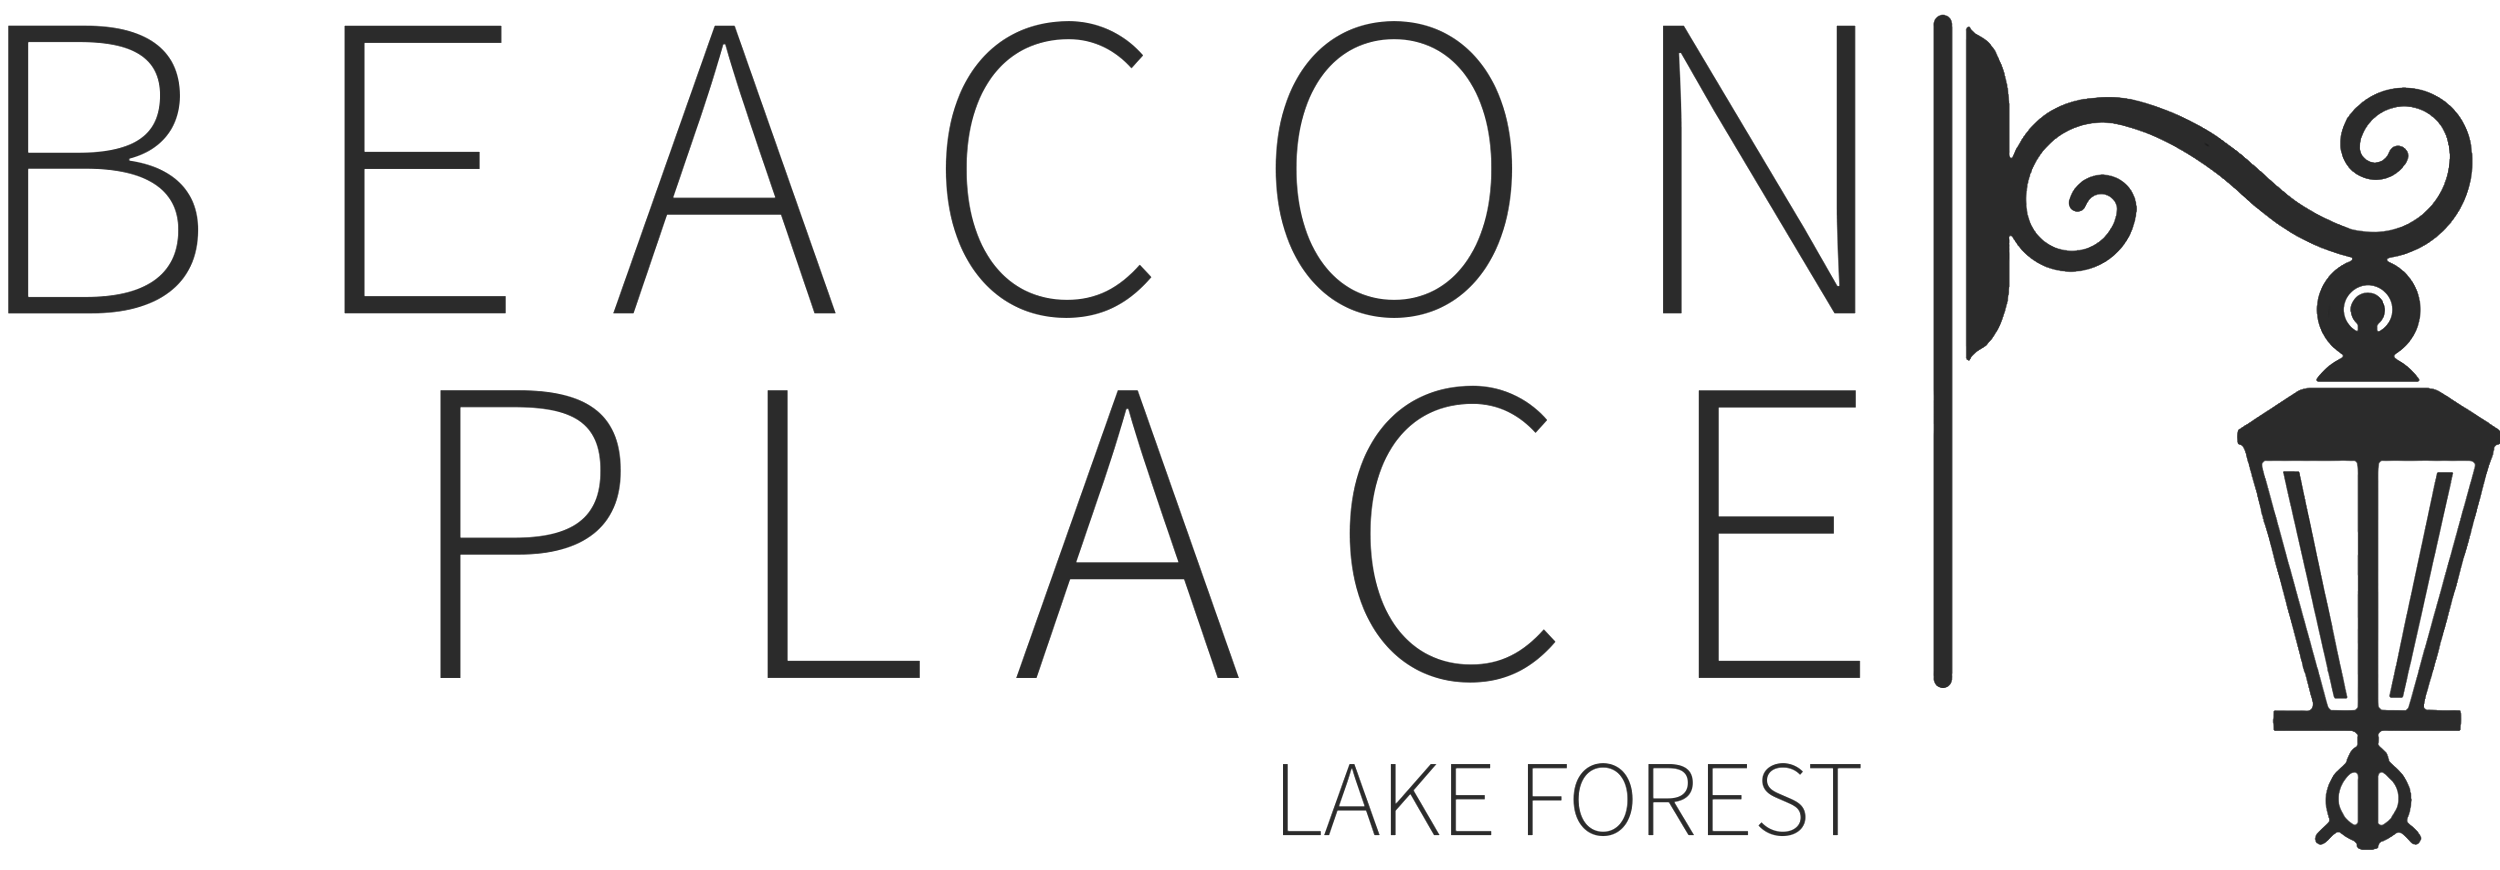 Beacon Place Logo - Lake Forest